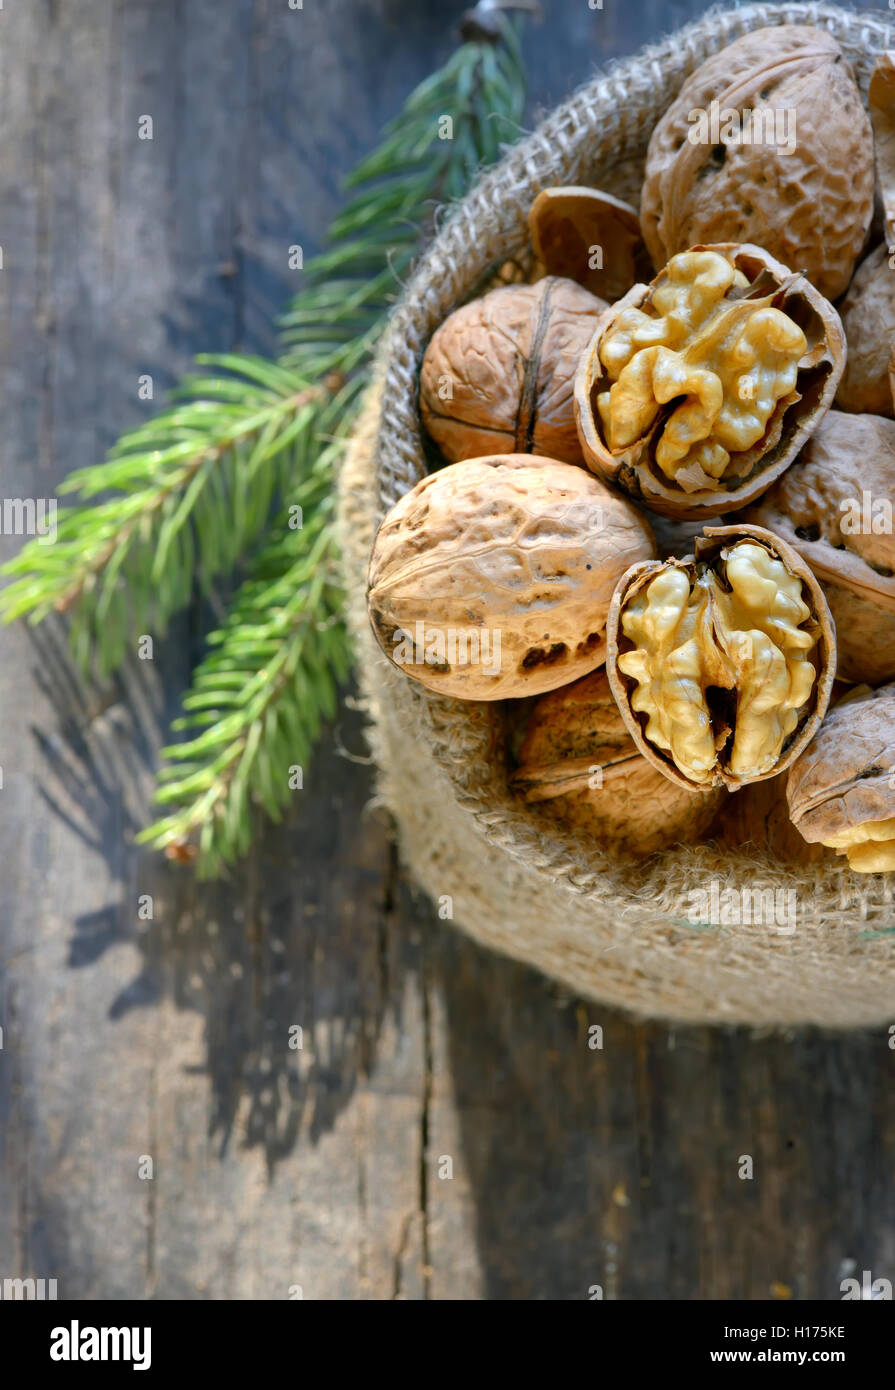 walnuts in a bag on a wooden background - Stock Image